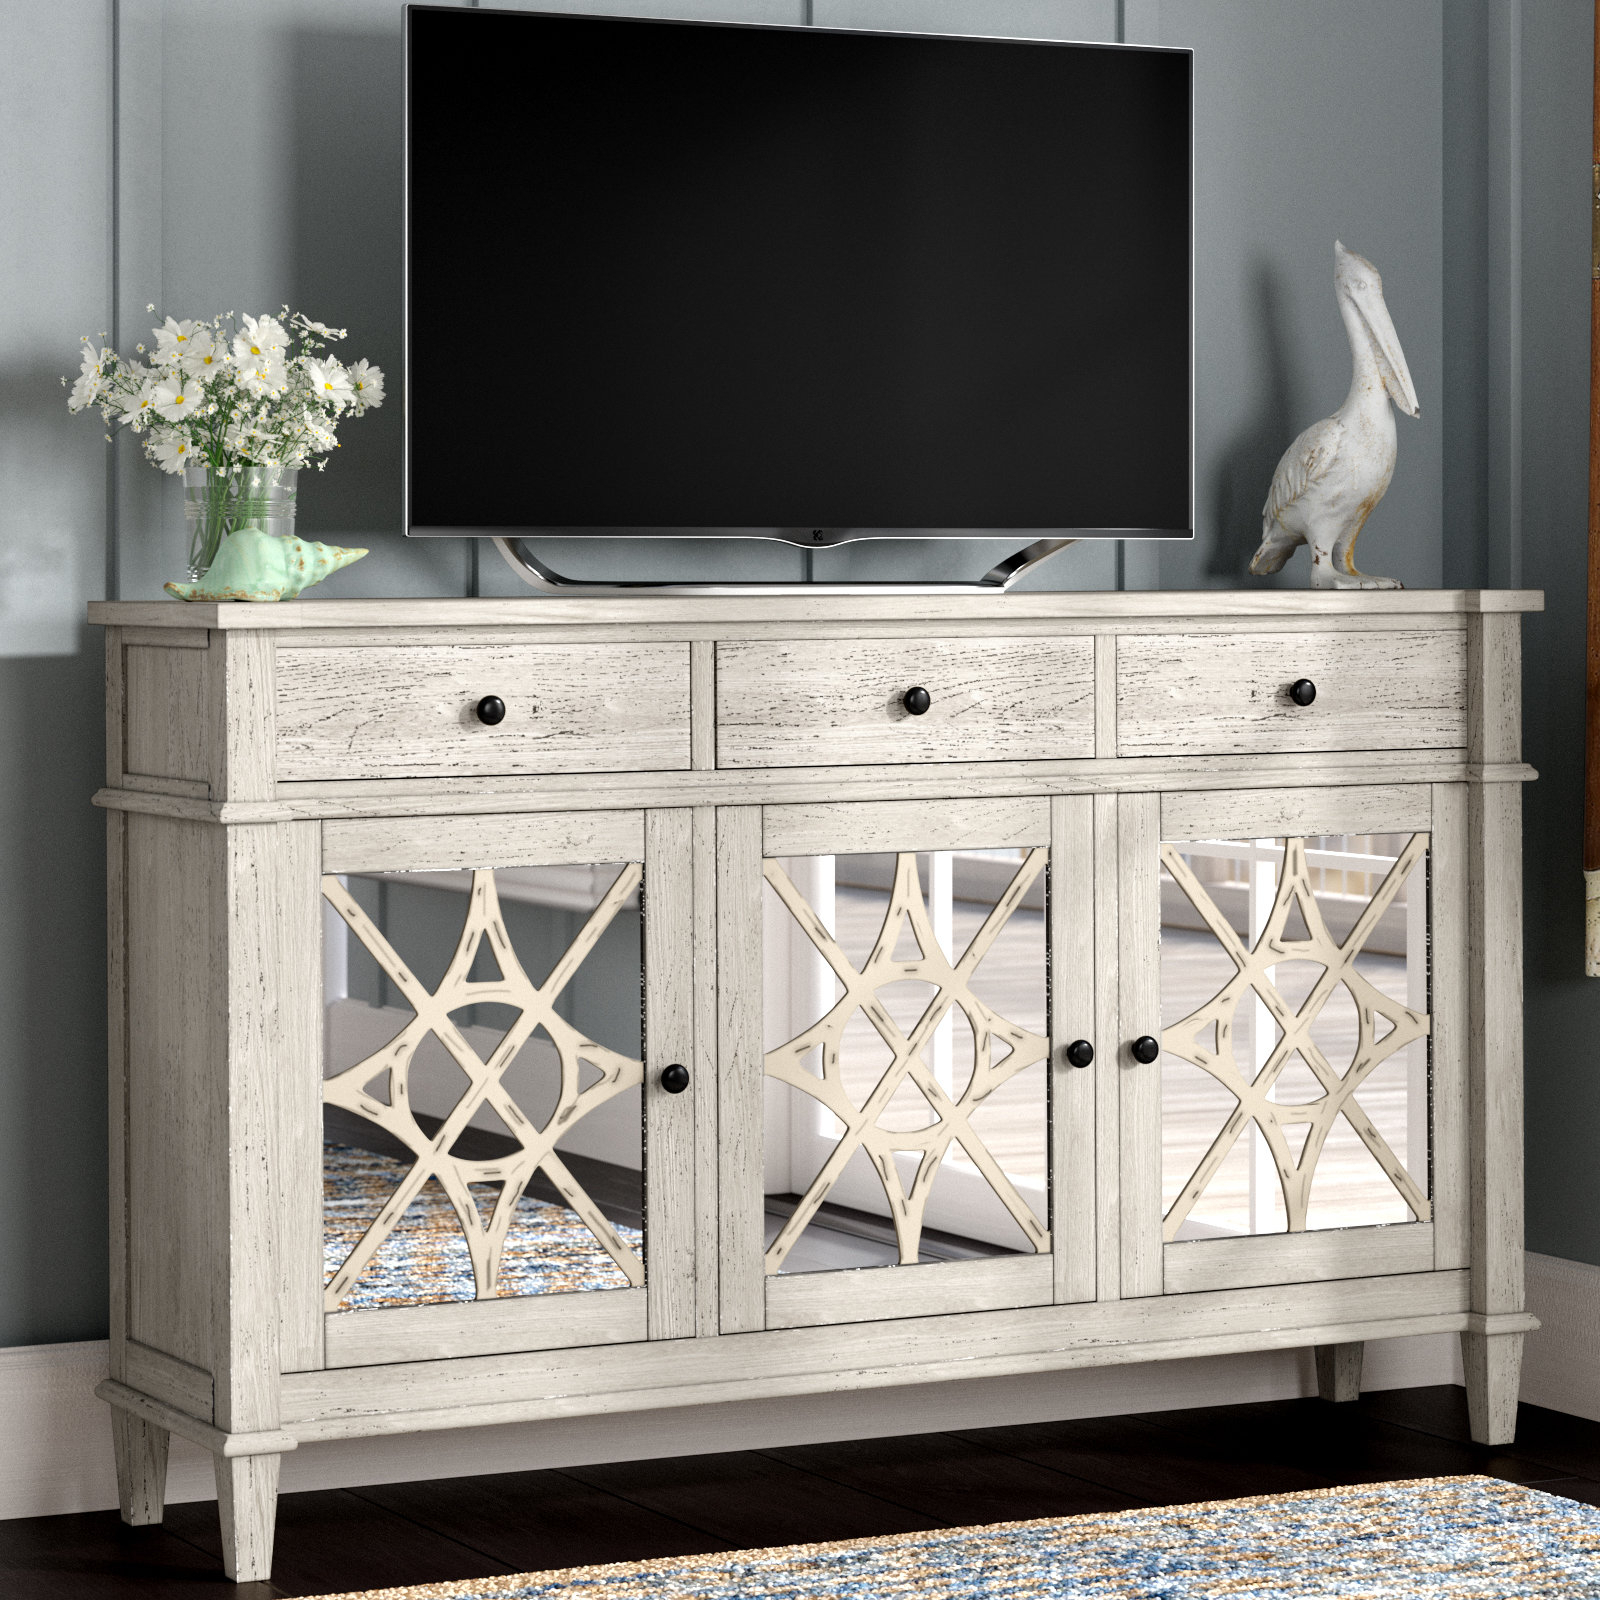 """Parmelee Tv Stand For Tvs Up To 65"""" Within Most Recent Parmelee Tv Stands For Tvs Up To 65"""" (Gallery 1 of 20)"""